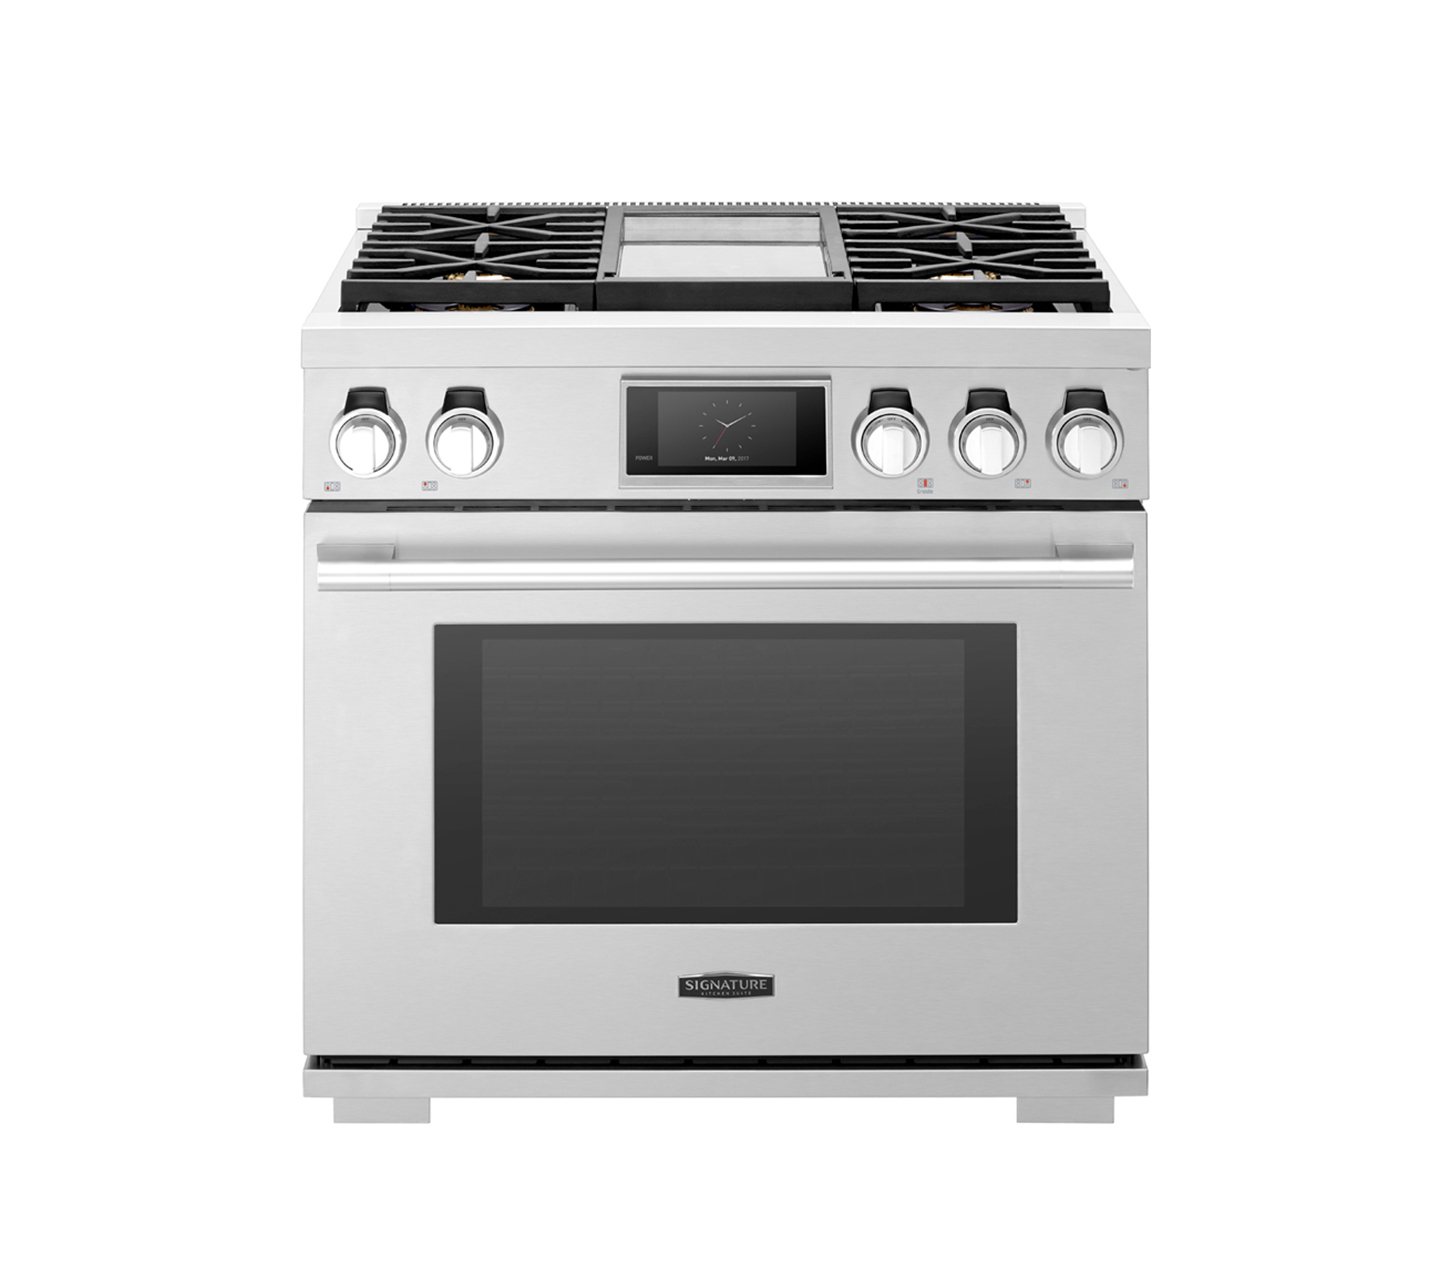 36-inch Gas Range with 4 Burners and Griddle | Signature Kitchen Suite